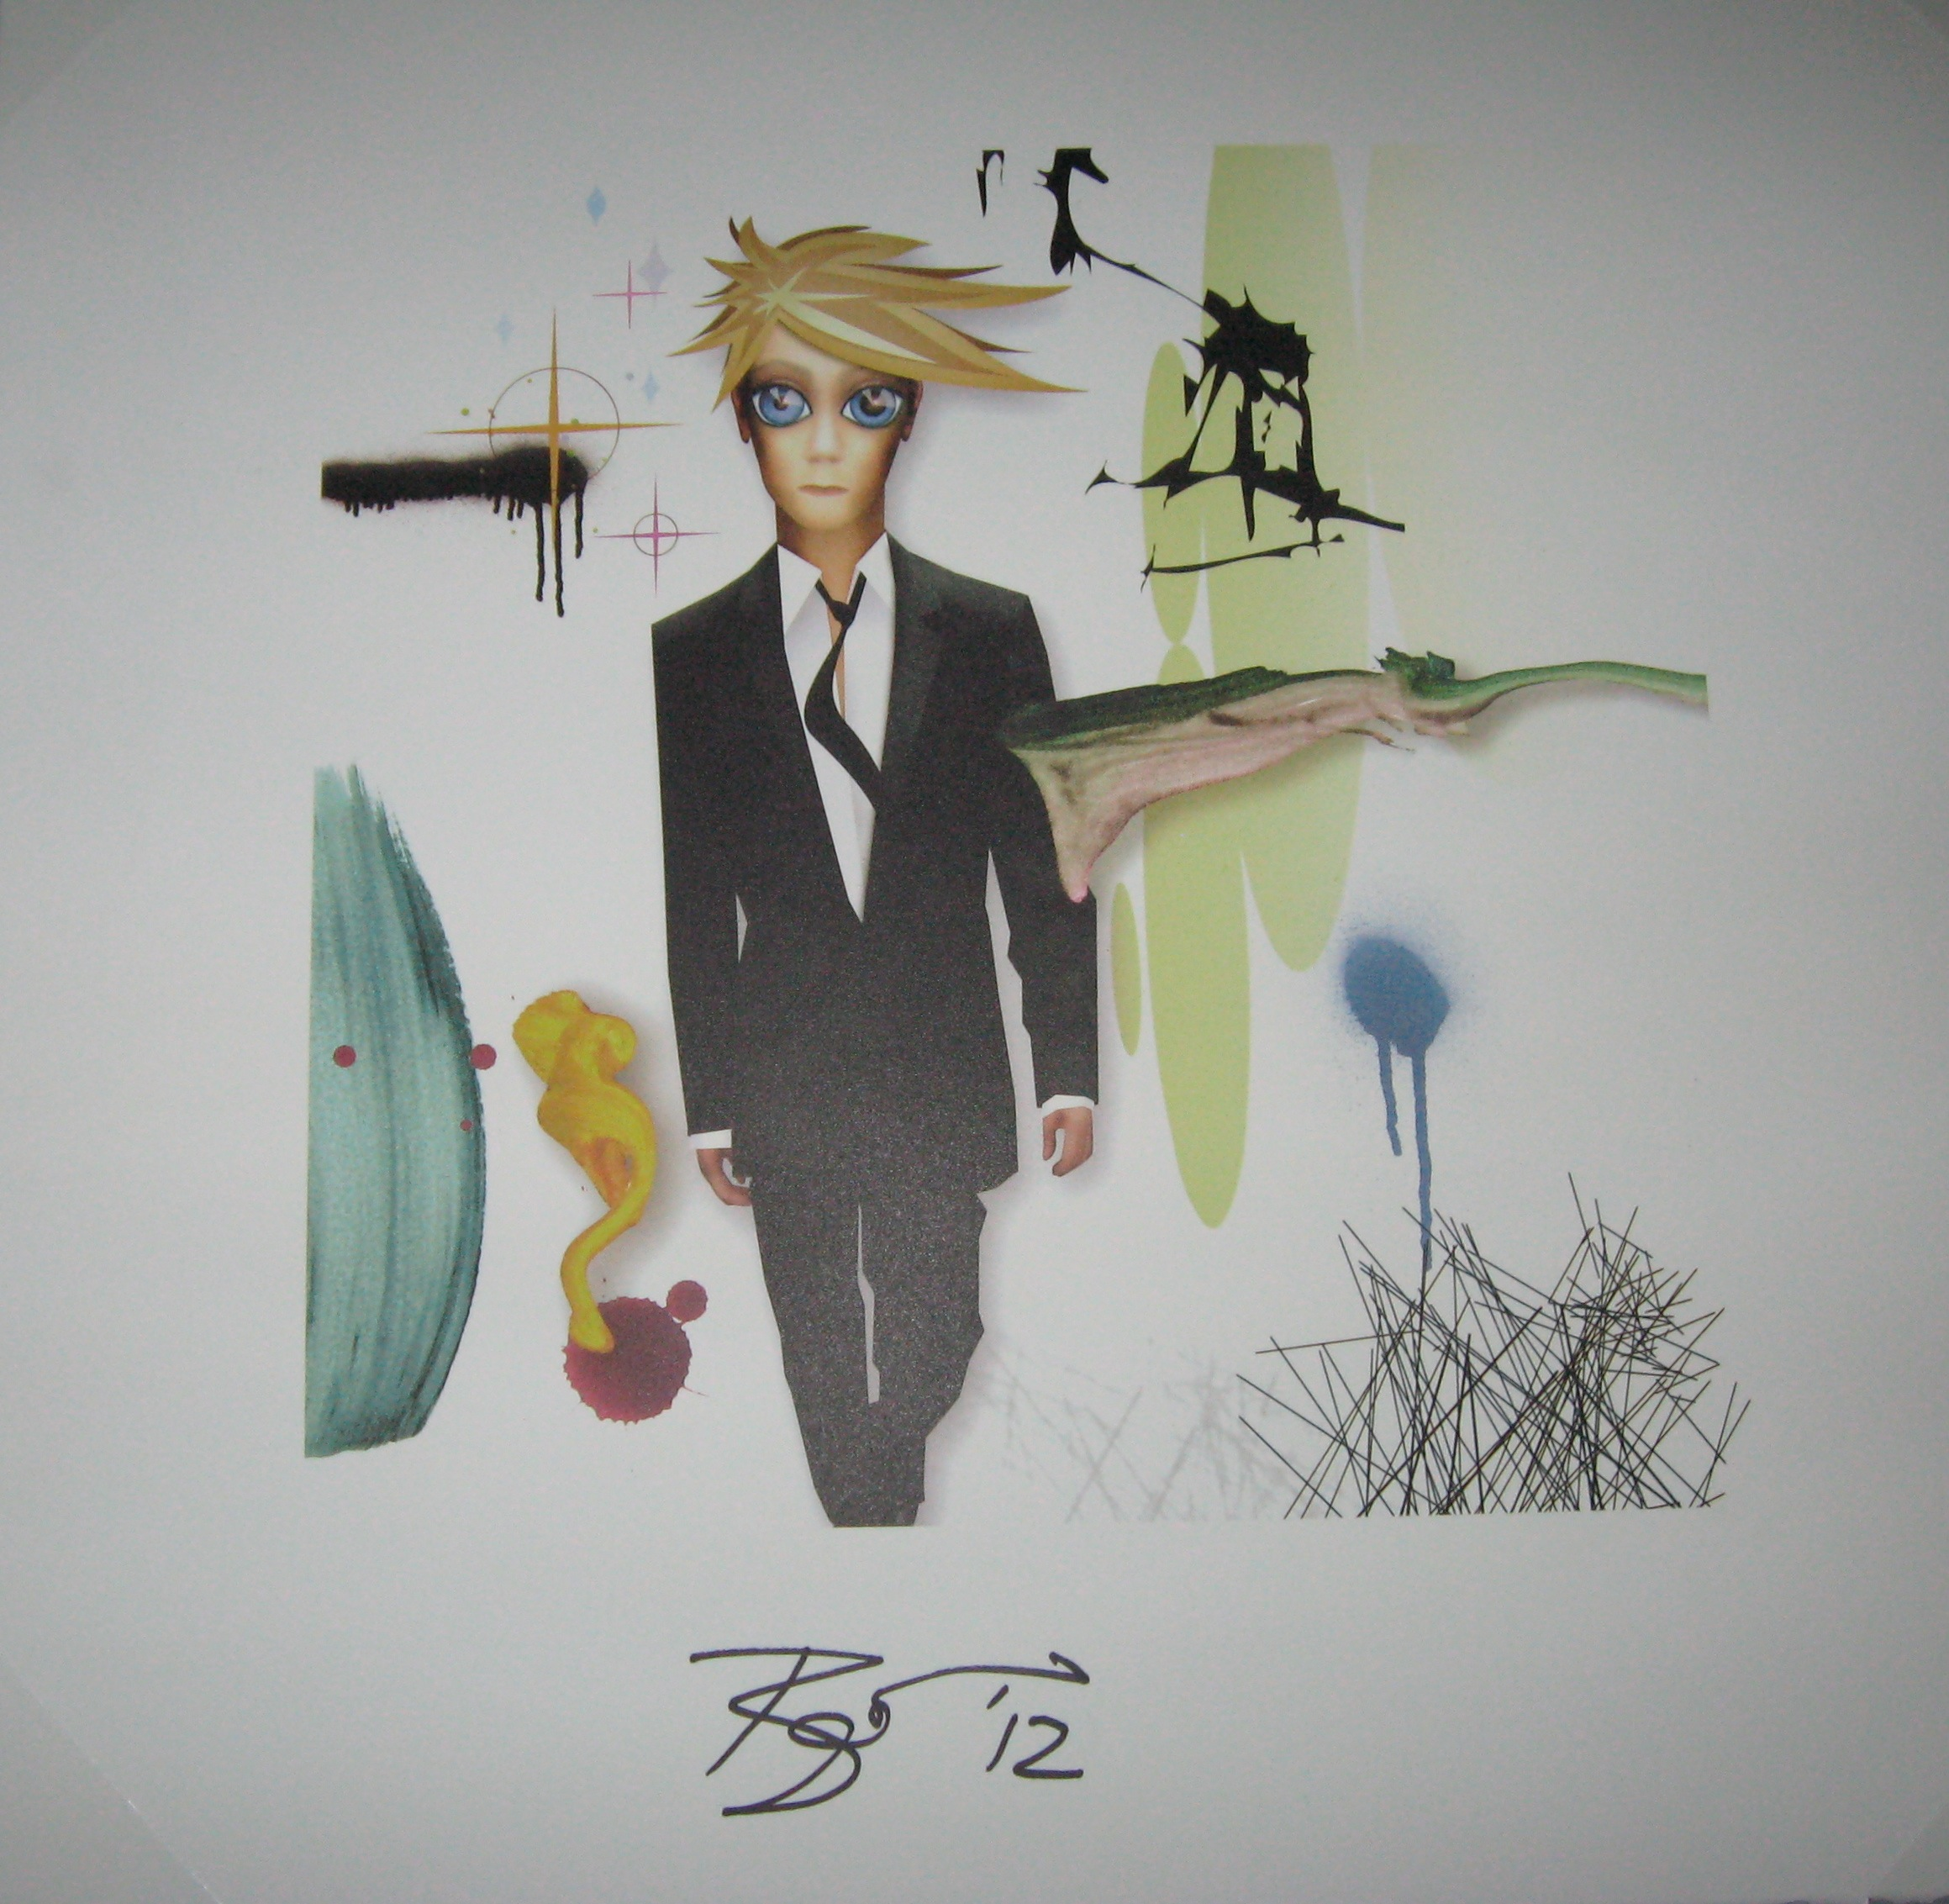 Charitybuzz Reality Unframed Limited Edition Lithograph